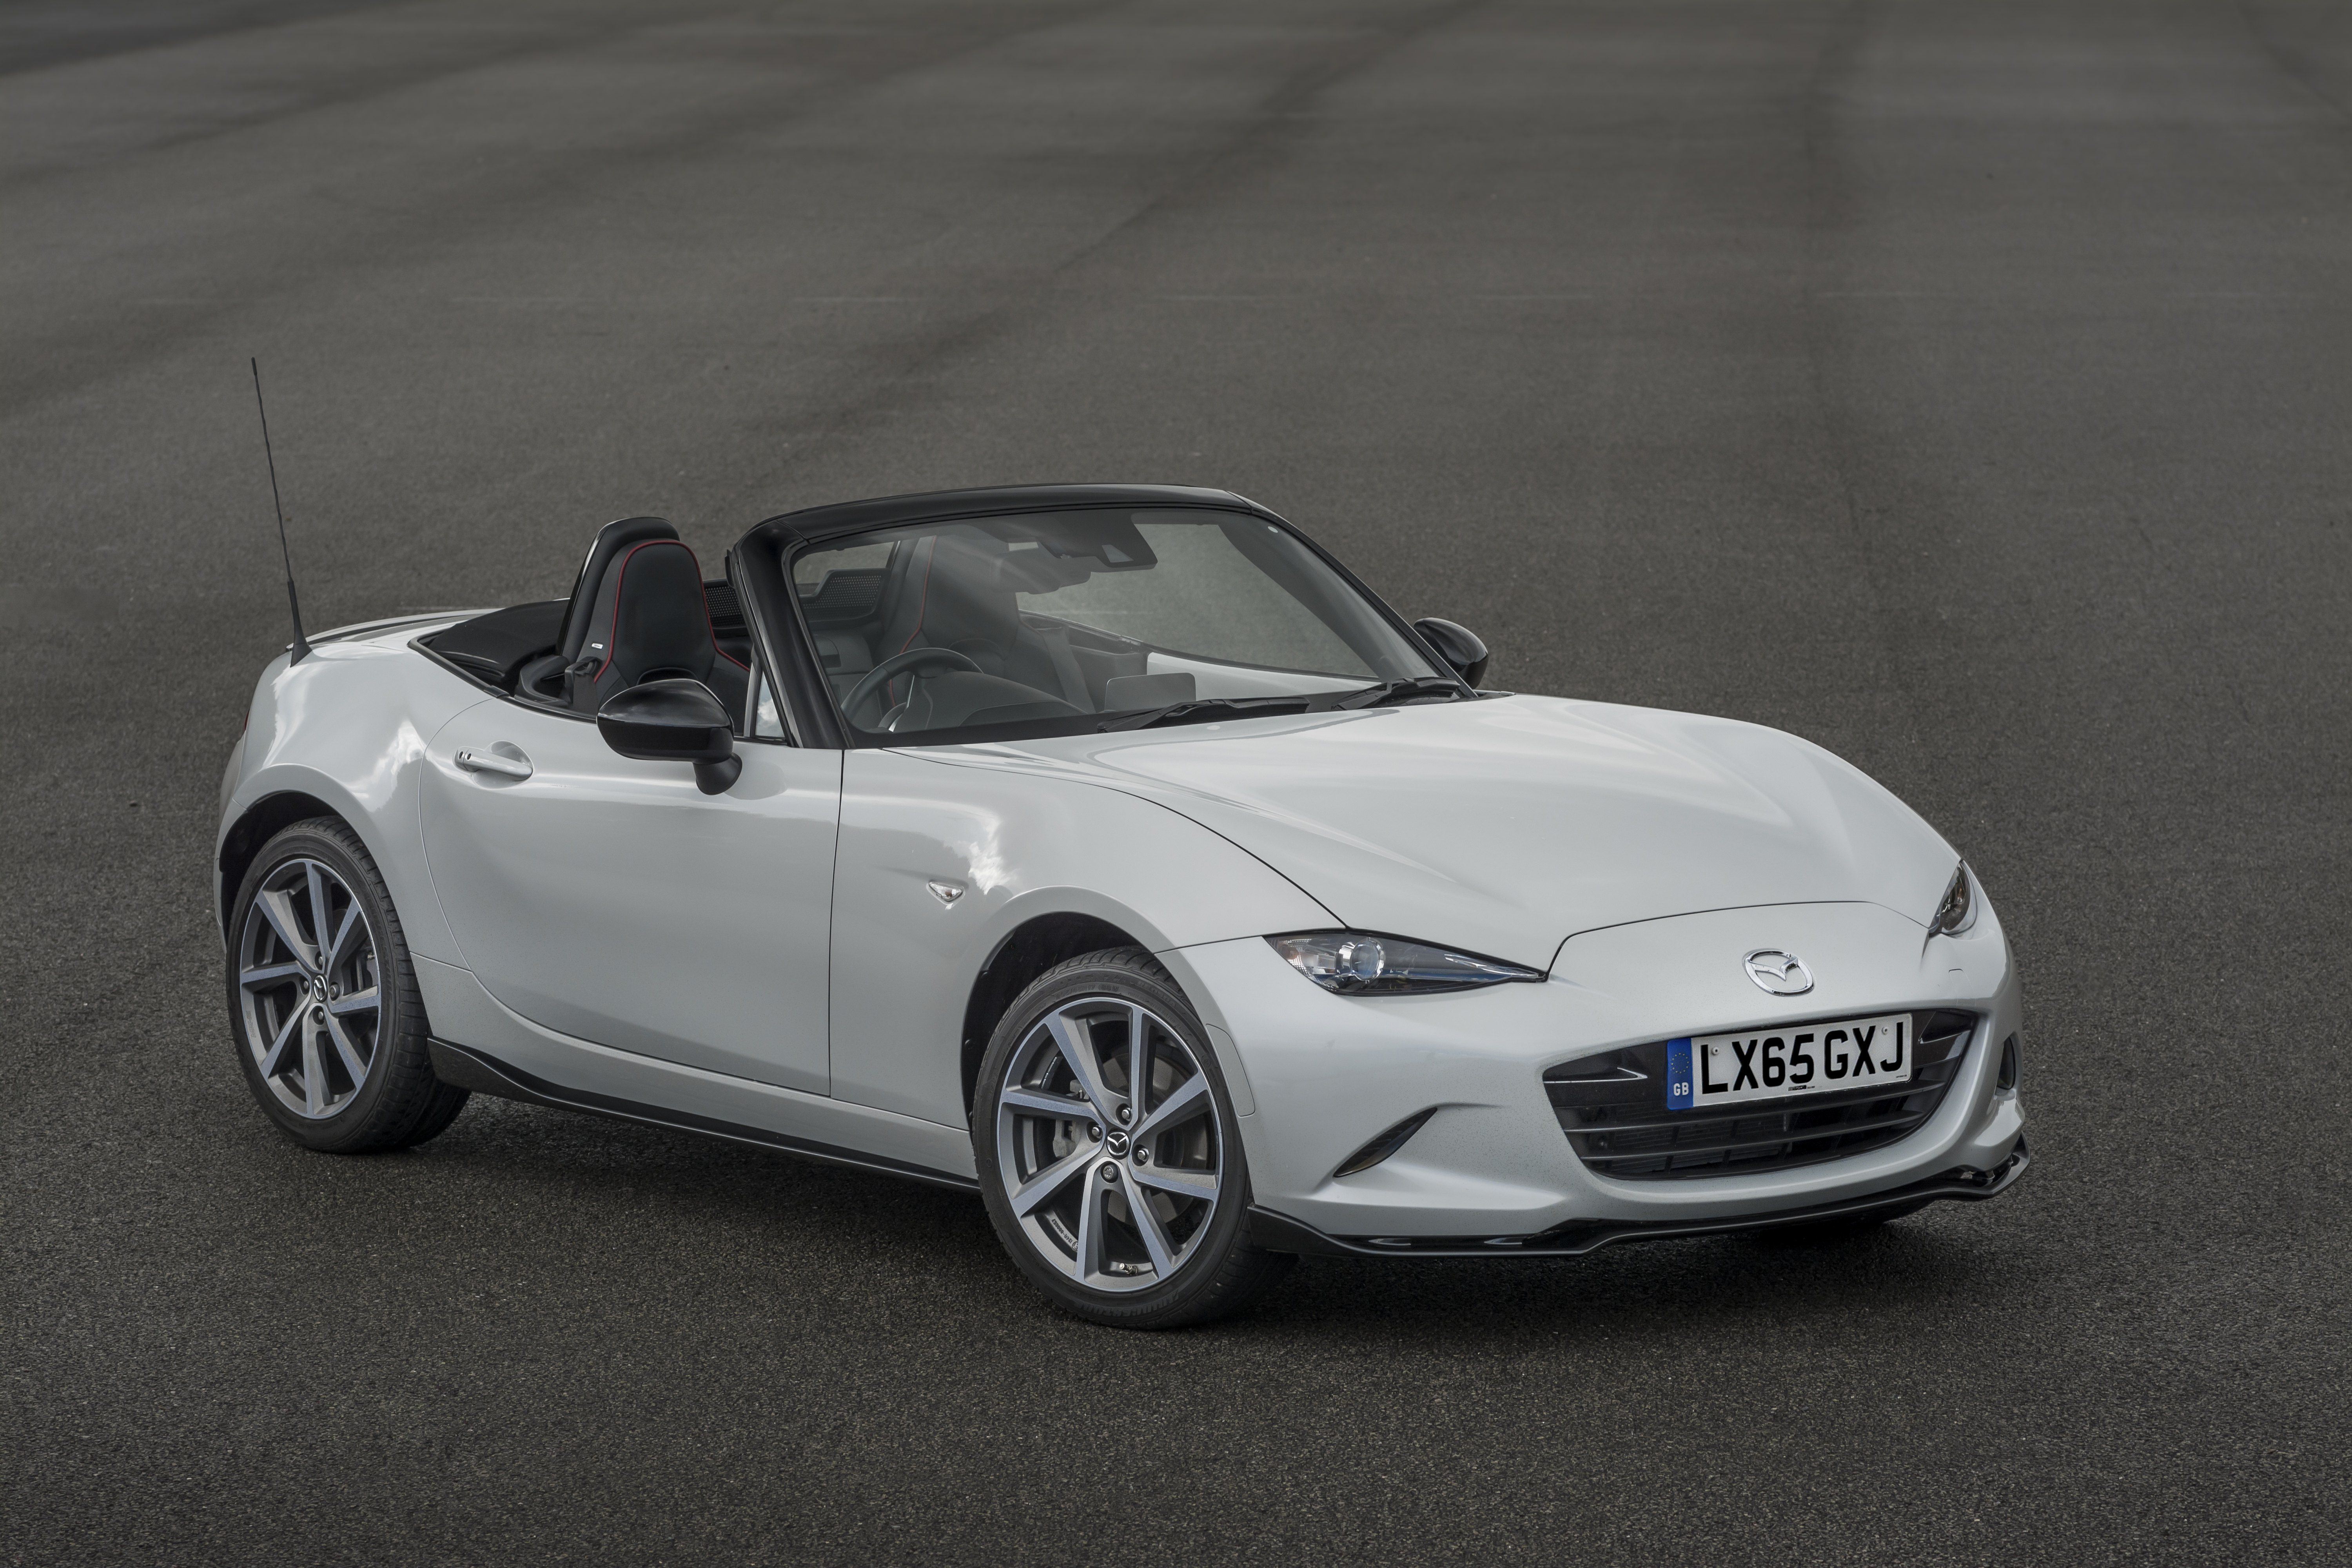 s start news uk to new mazda aboutmazda general the pace sets flying year for